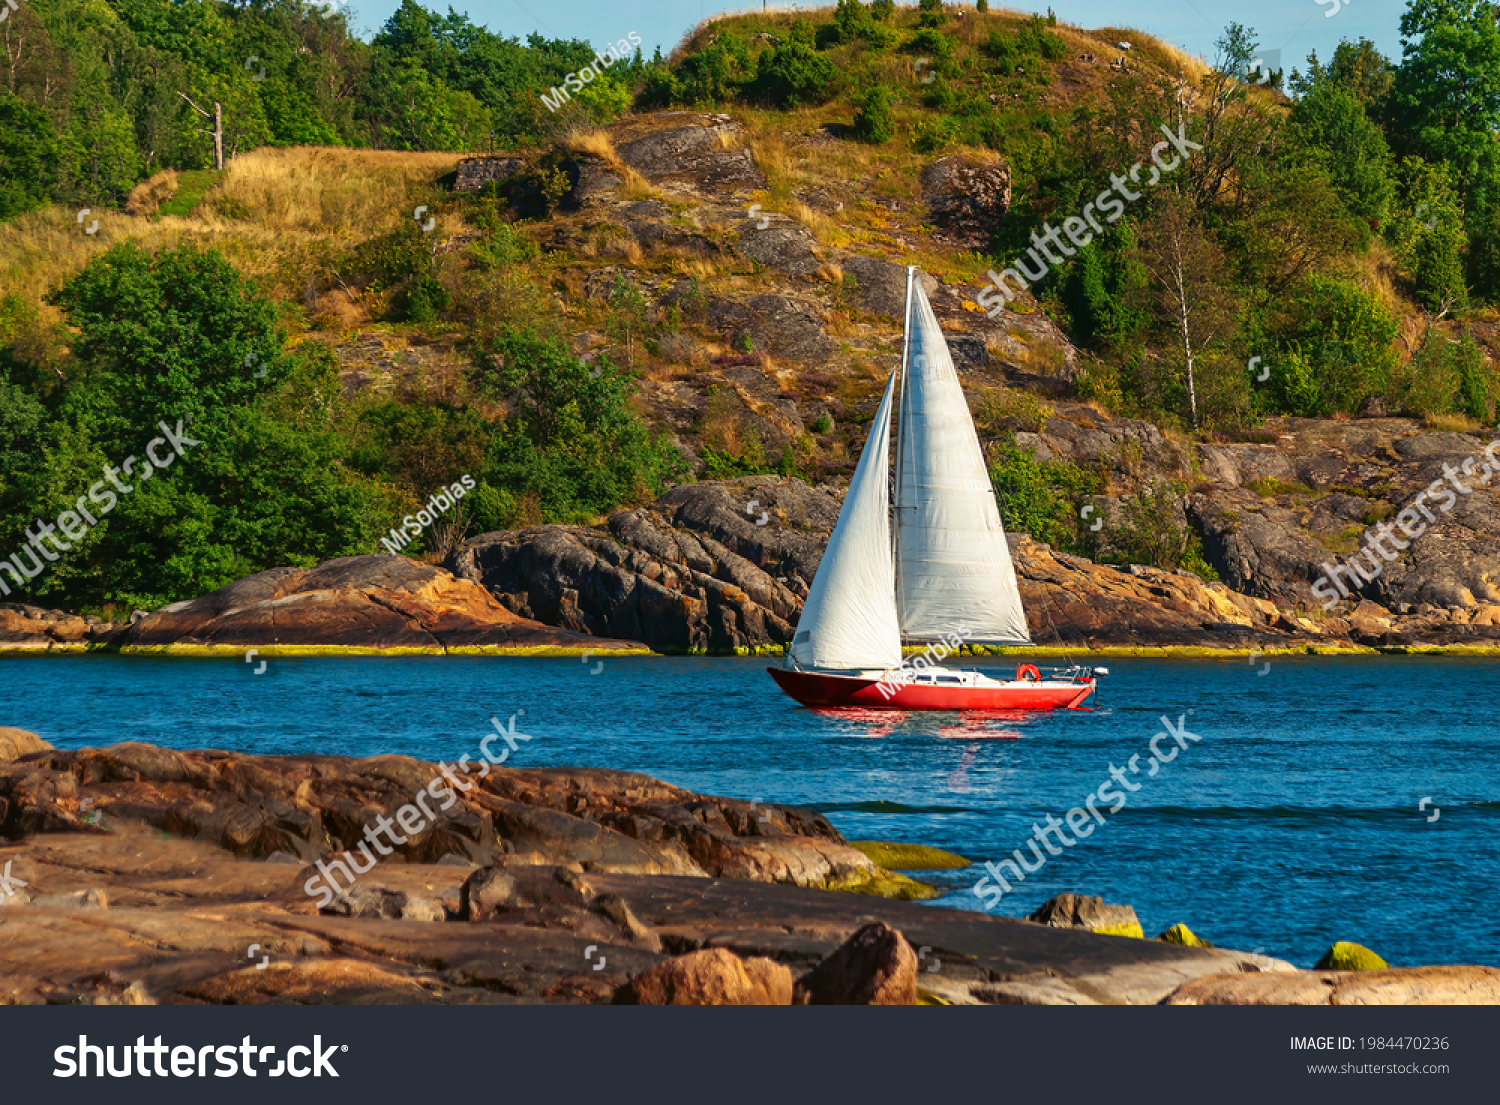 Sail boat sailing between two islands in Finnish gulf near the Suomenlinna